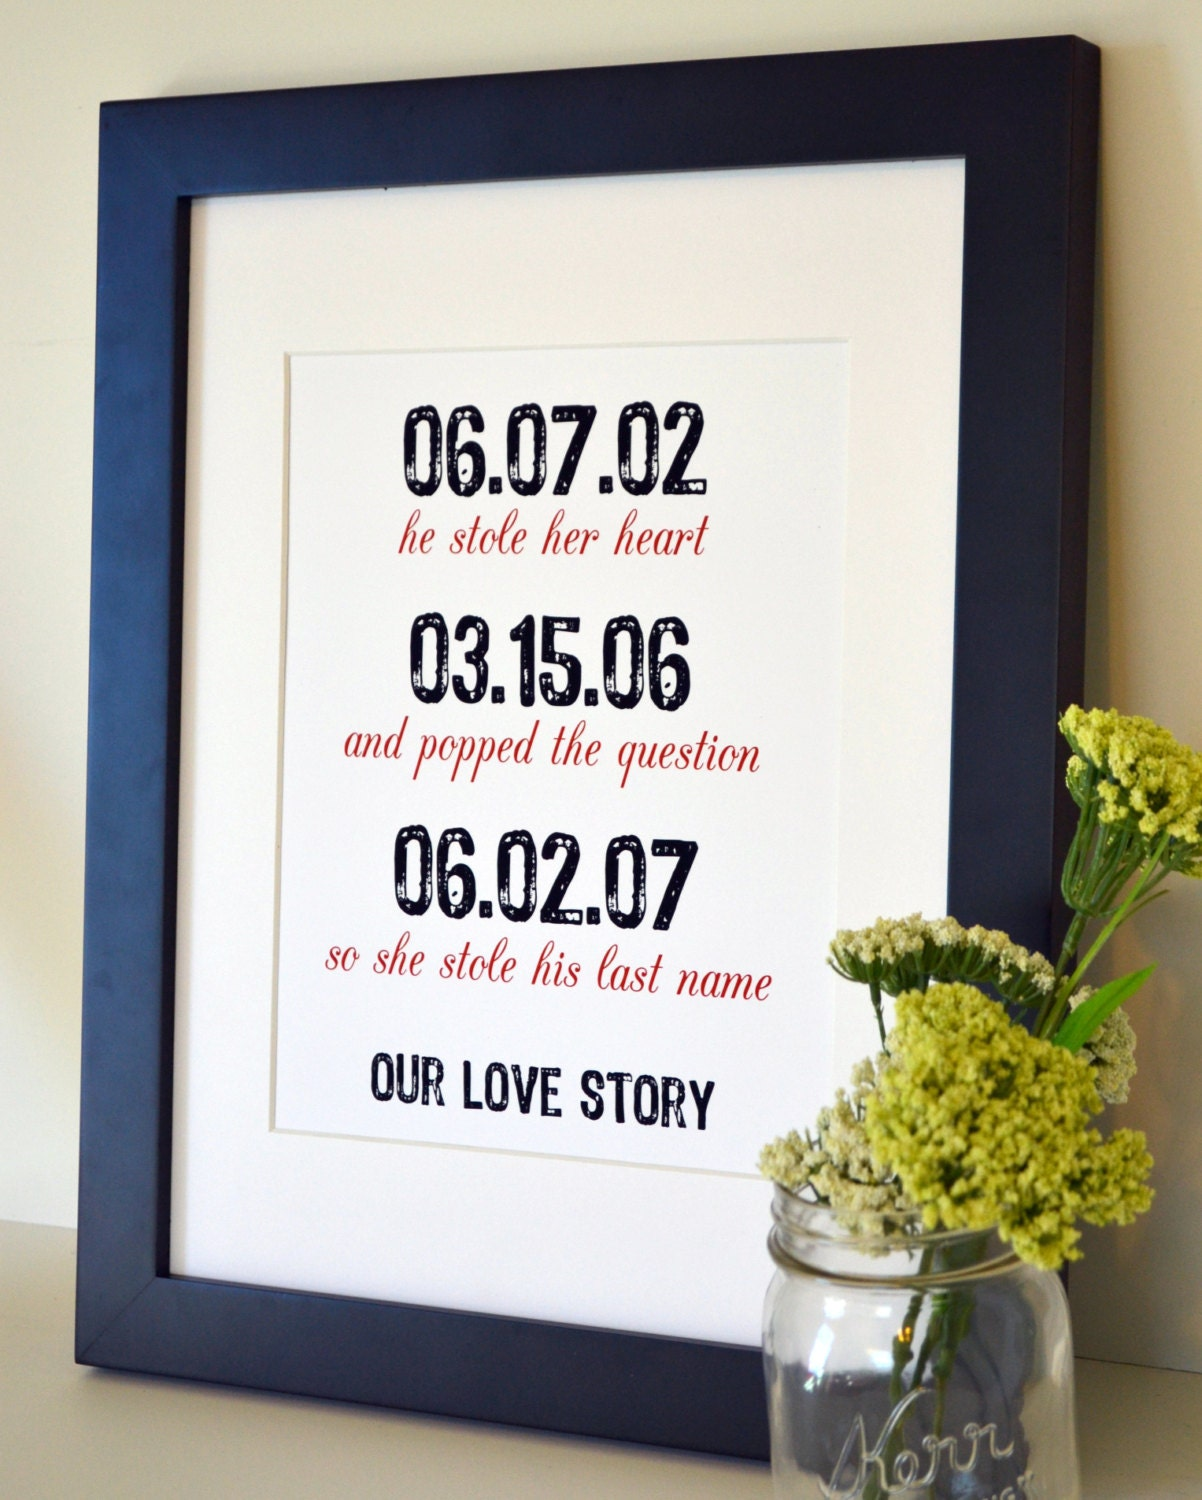 Unusual Wedding Anniversary Gifts Husband : ... anniversary gift- engagement gift- gift for husband/ wife- unique gift